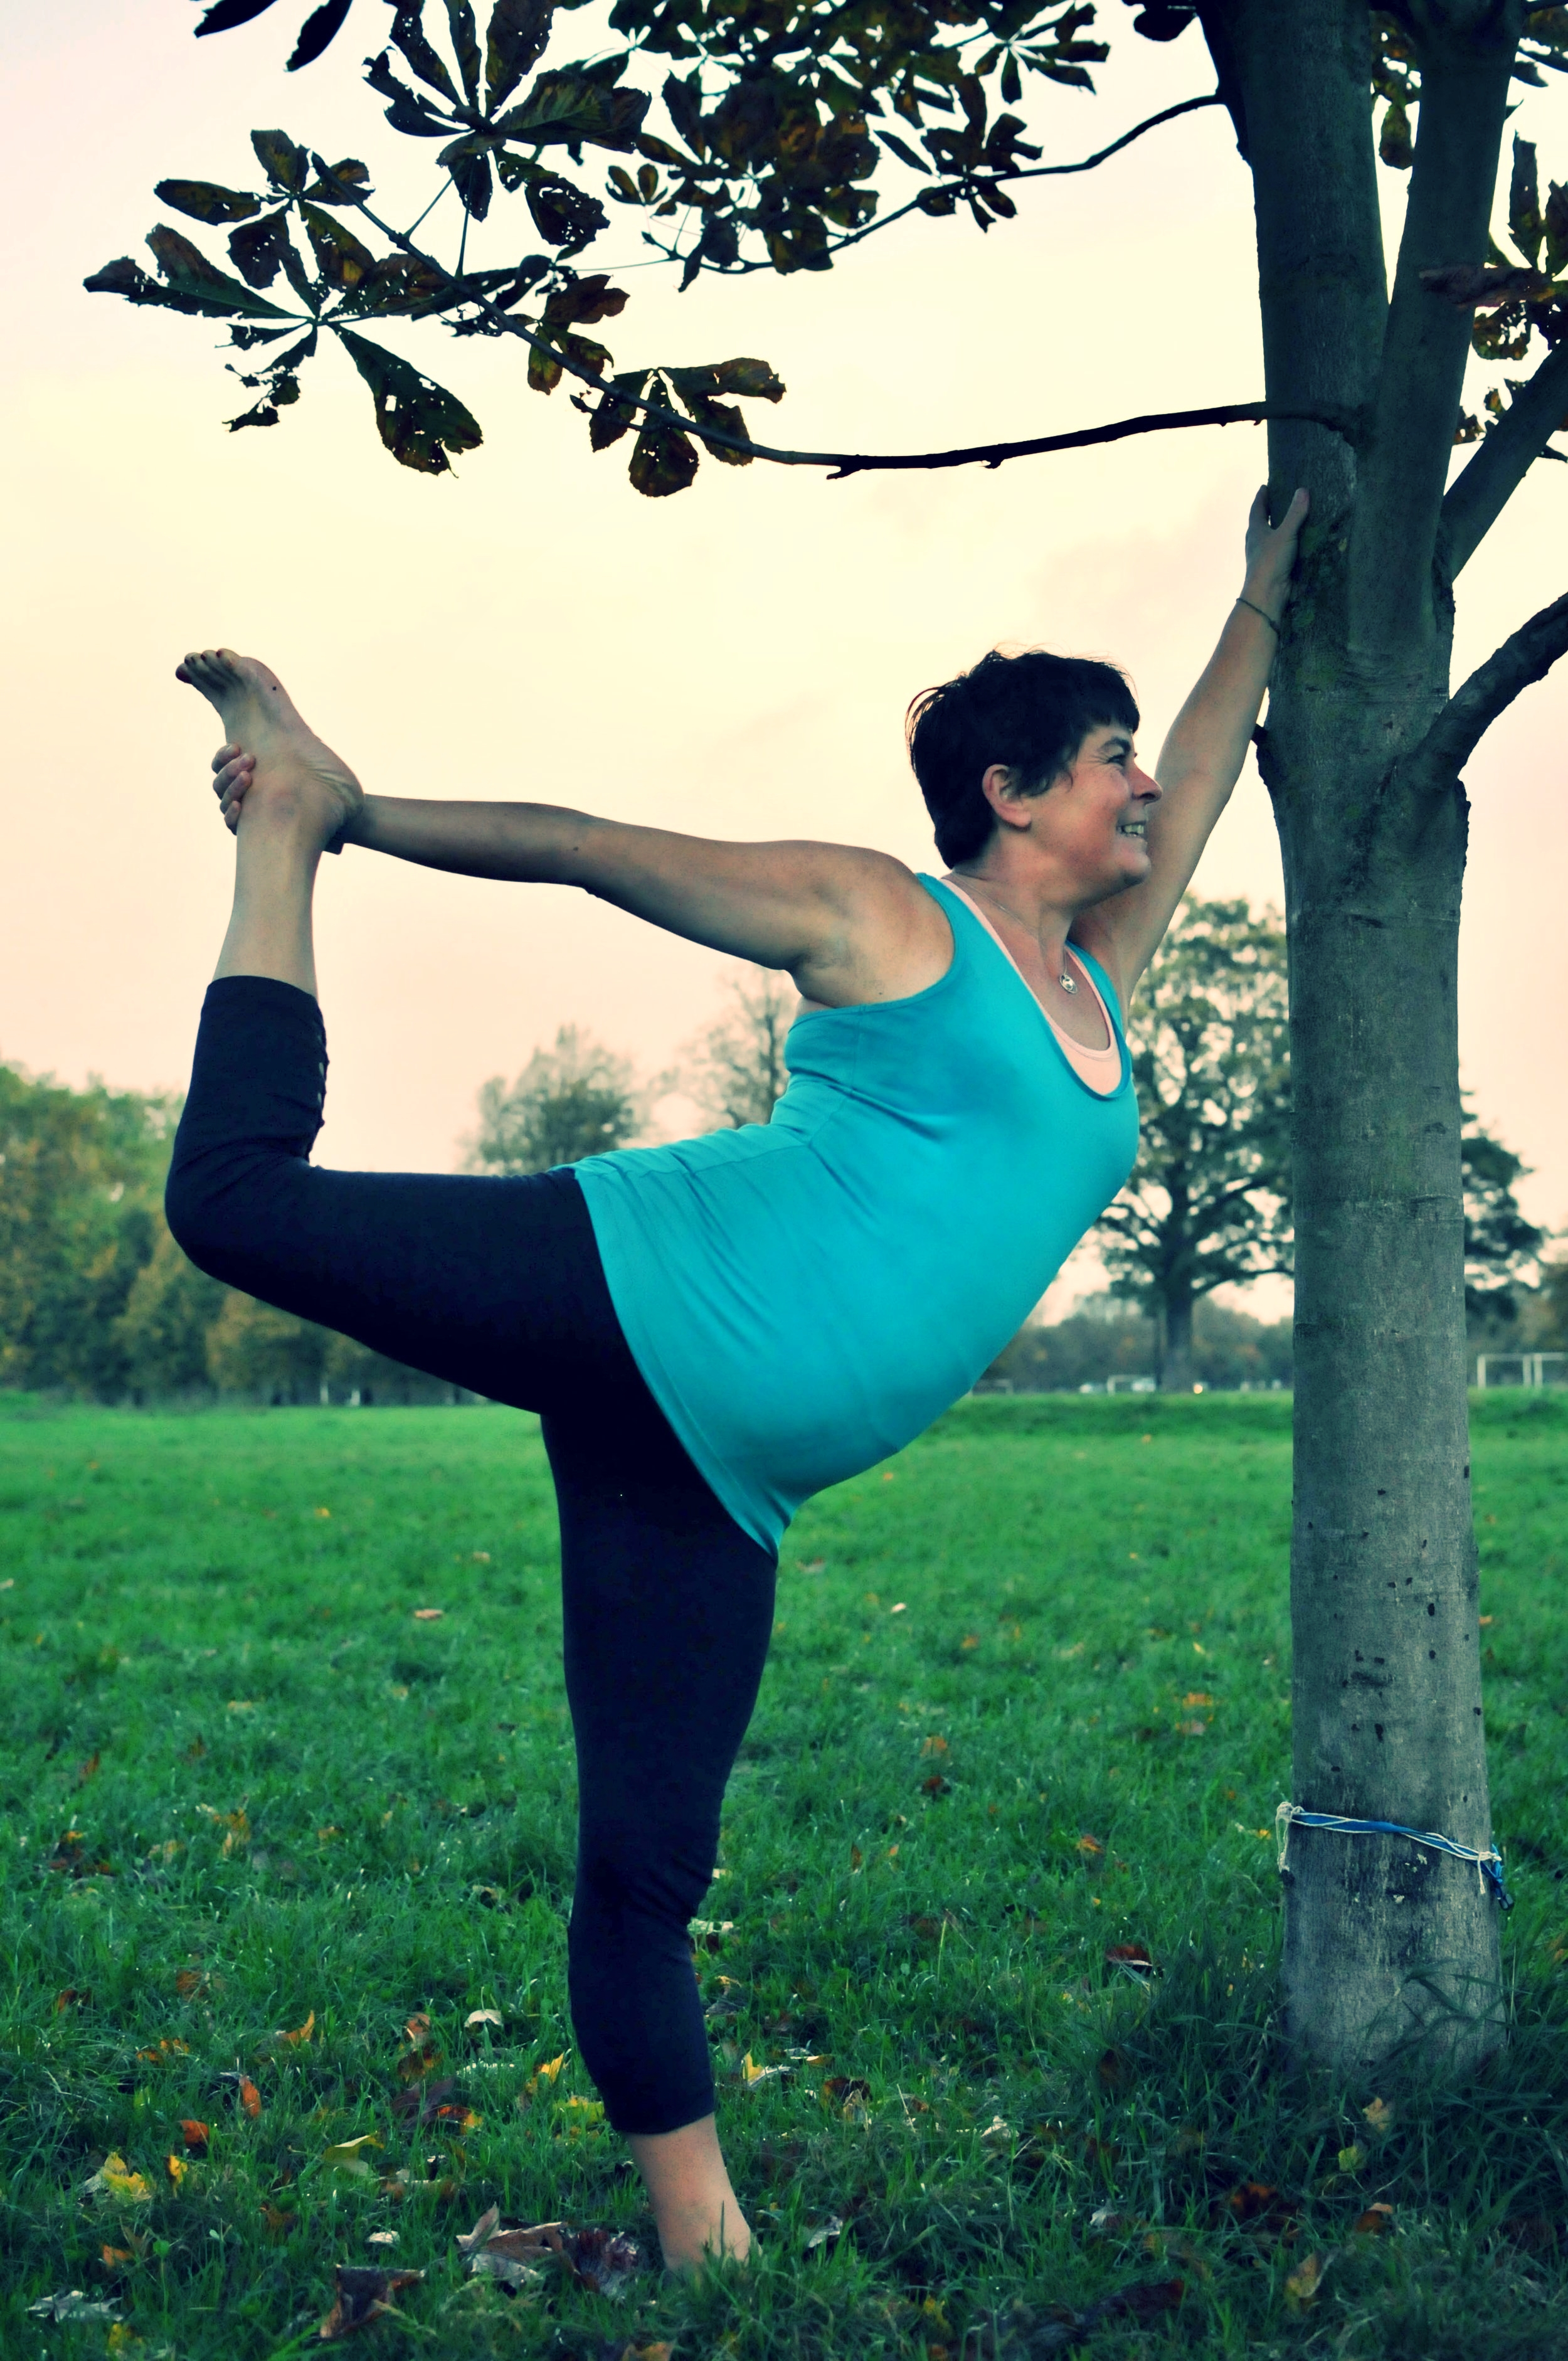 Natarajasana on Clapham Common at dawn (luckily no need to get up early to see the sunrise at the moment!)